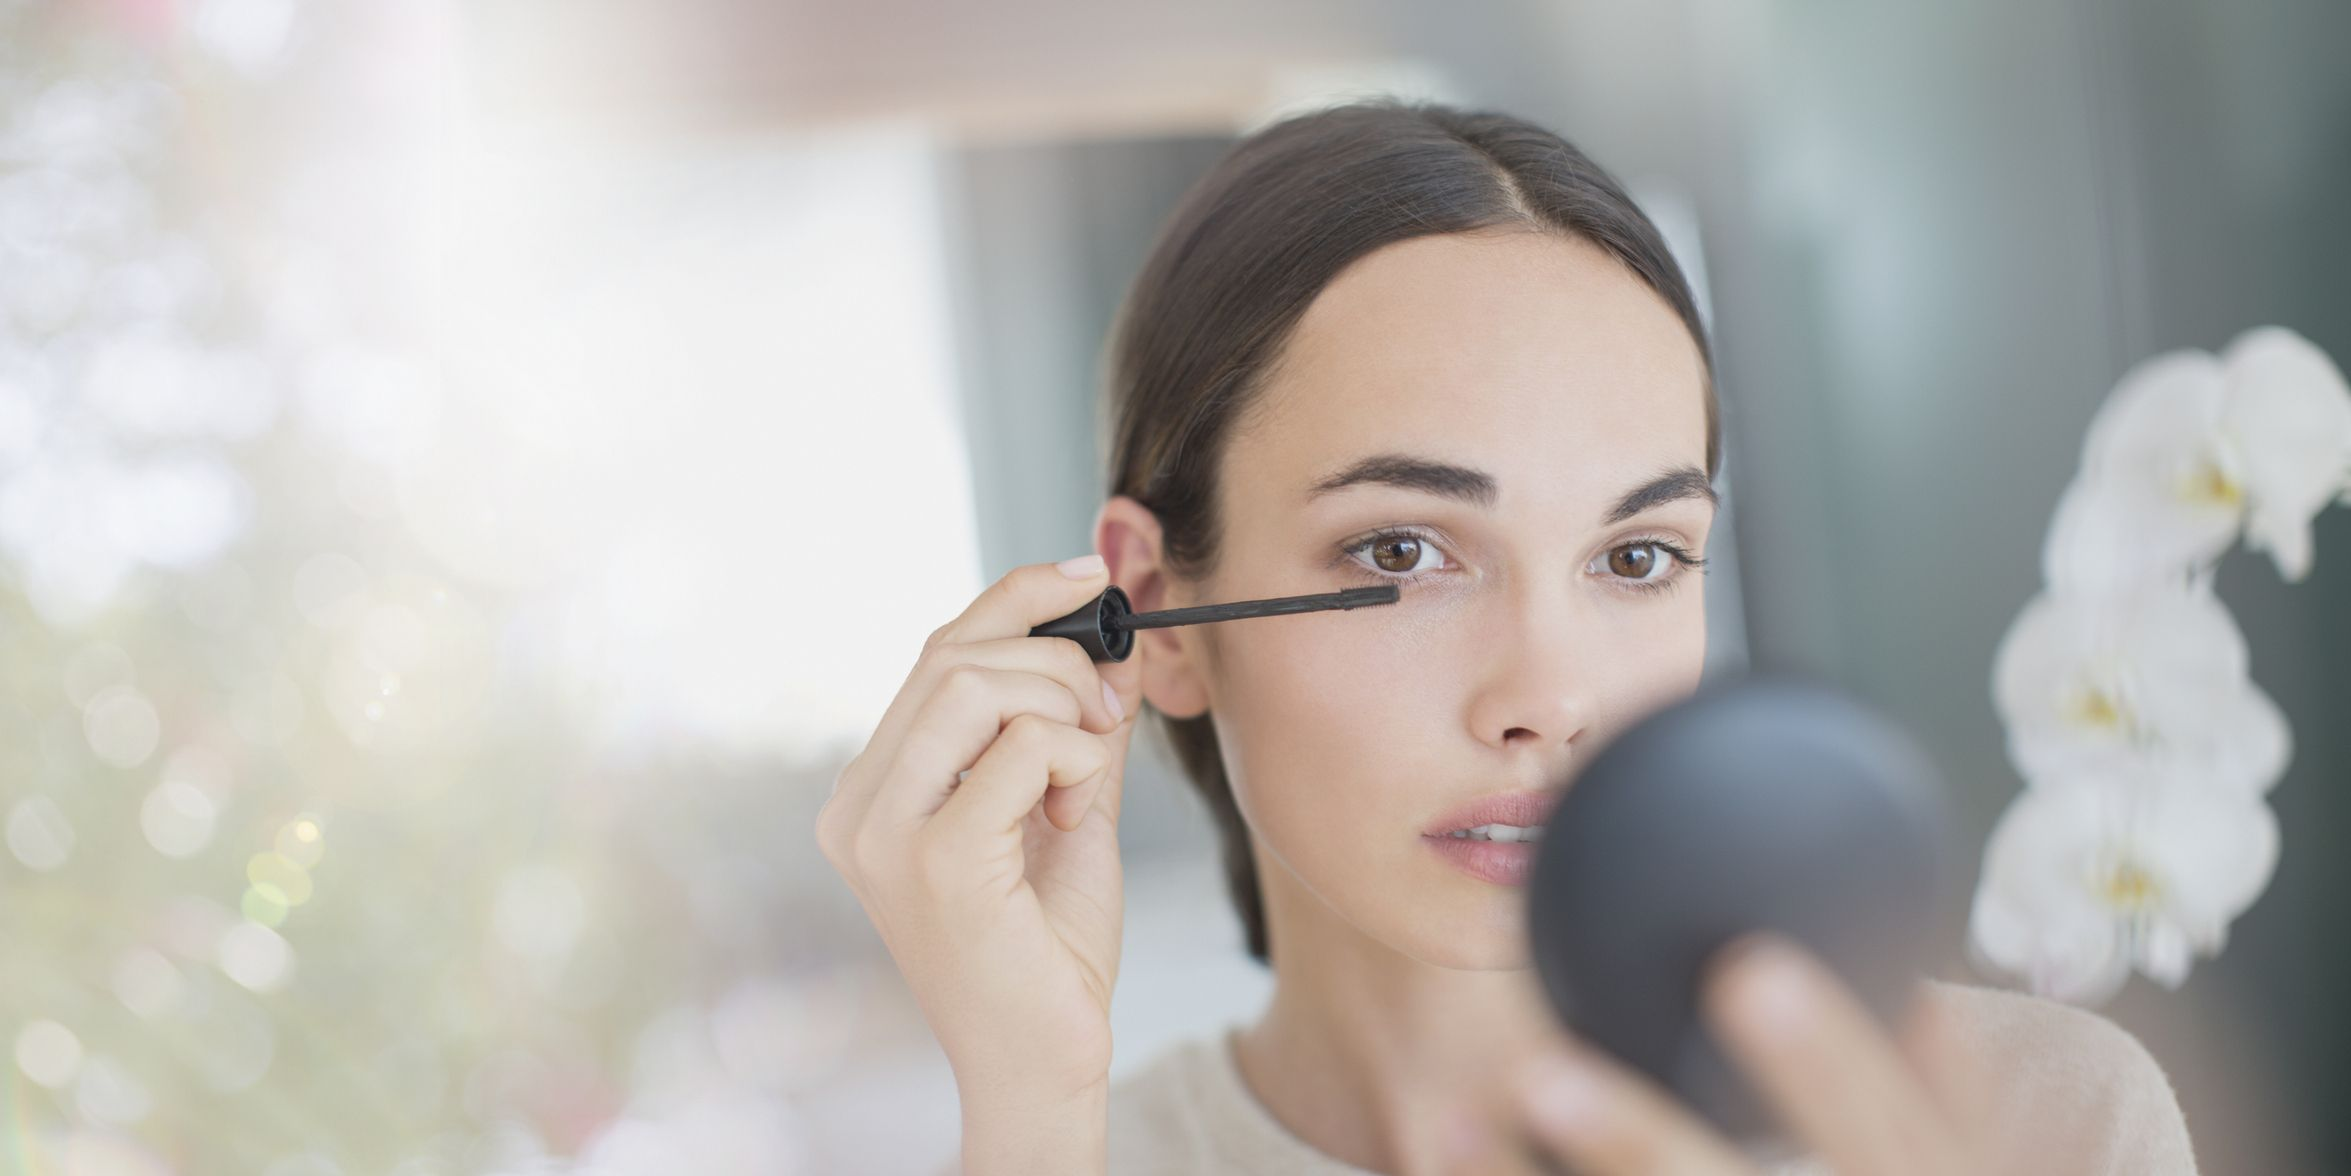 Woman apply mascara with mascara wand and compact mirror